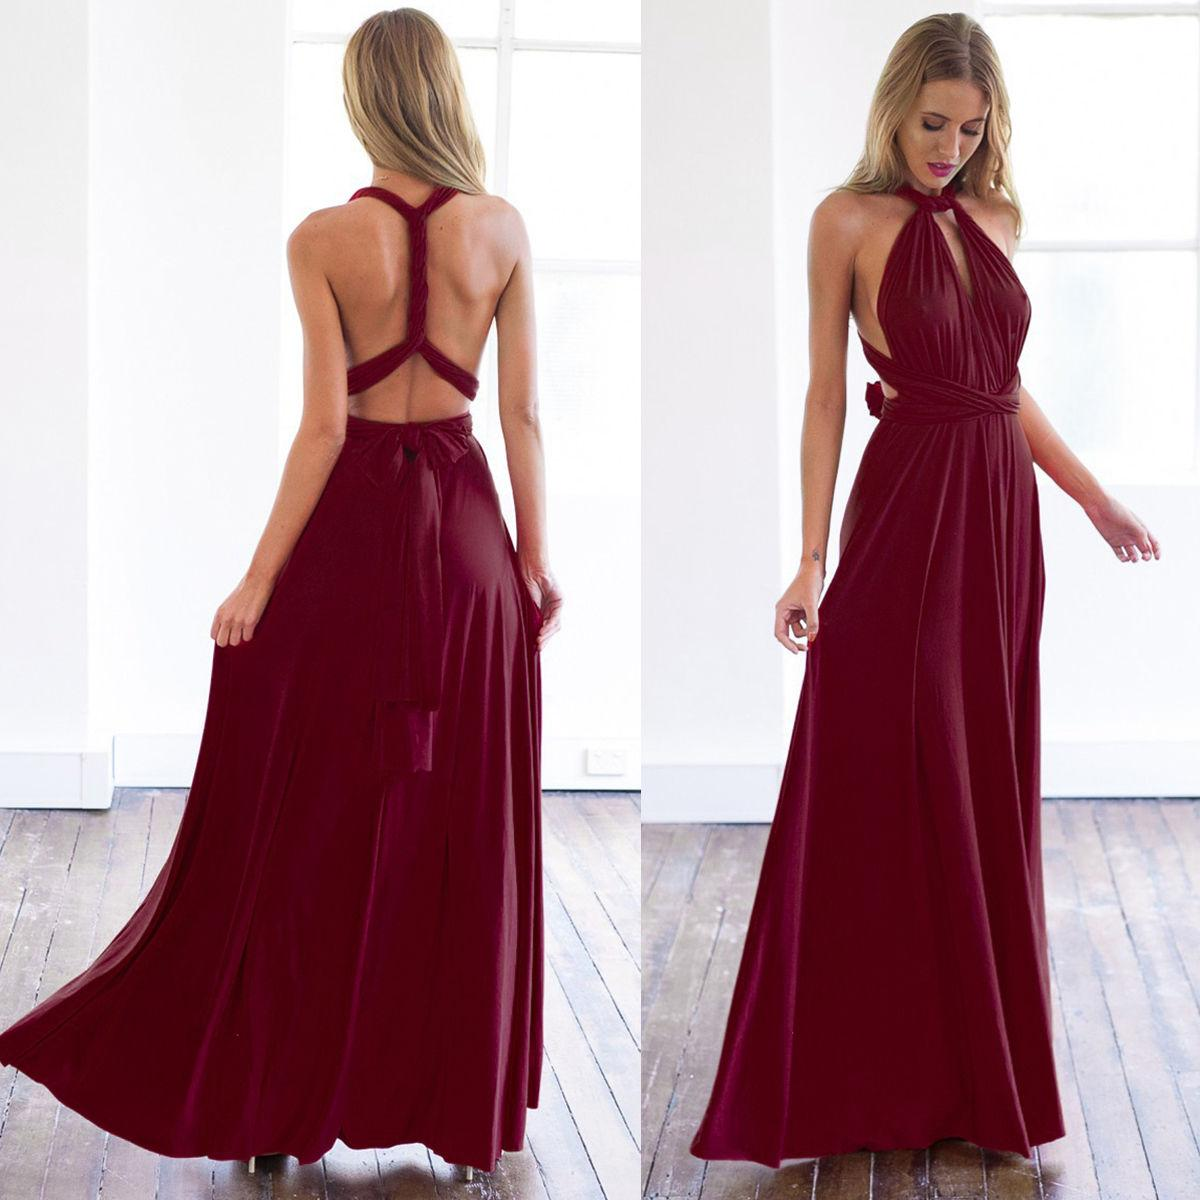 df3e657454 Women  s Elegant Women Evening Dress Convertible Multi Way Wrap Bridesmaid  Formal Long Dresses Dance Gown Formal Long Dresses HJ075